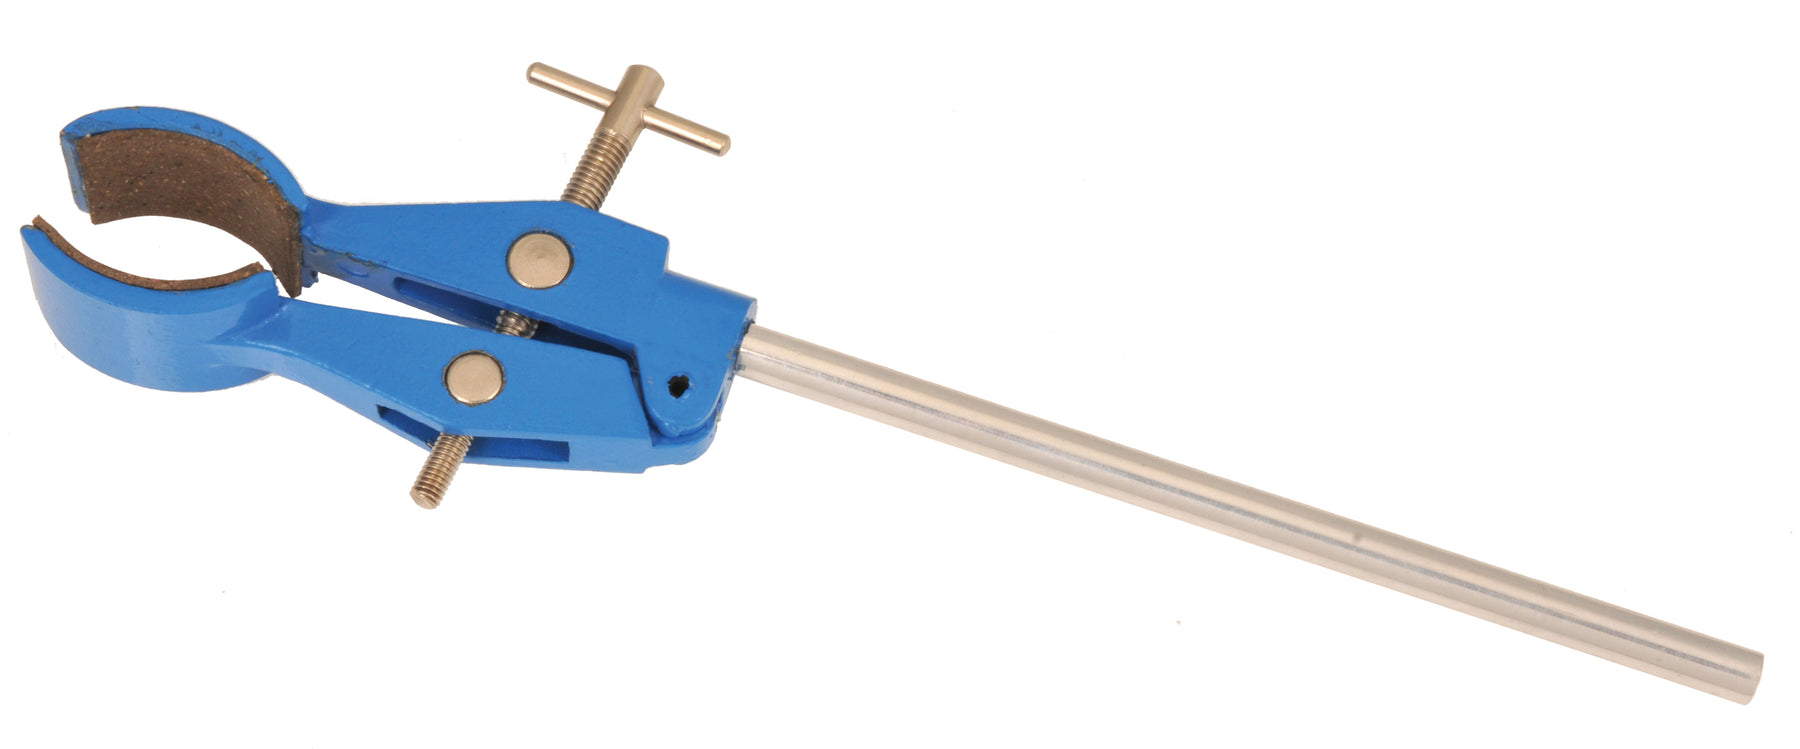 EISCO Universal Clamp, 2 Prong, Cork Lined